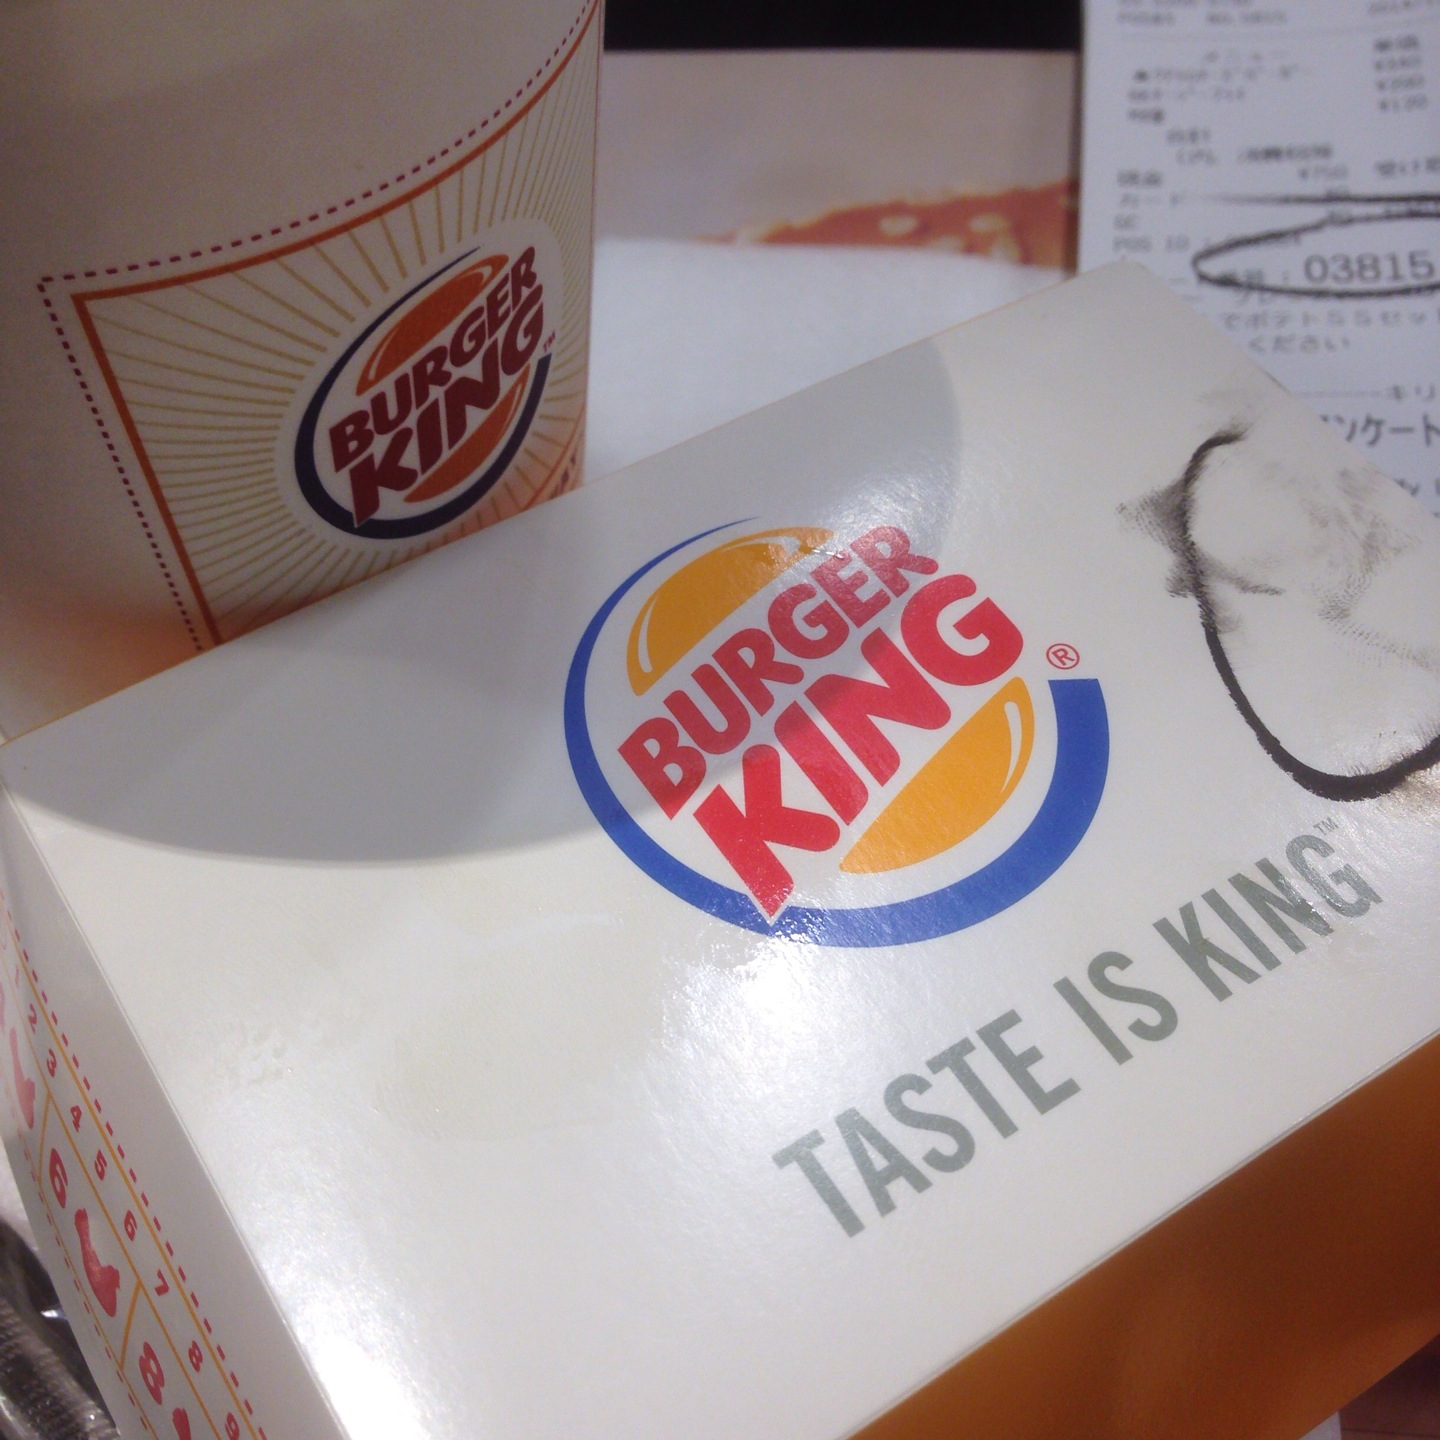 [CheckedIn] at BURGER KING 新宿靖国通り店 #foursquare